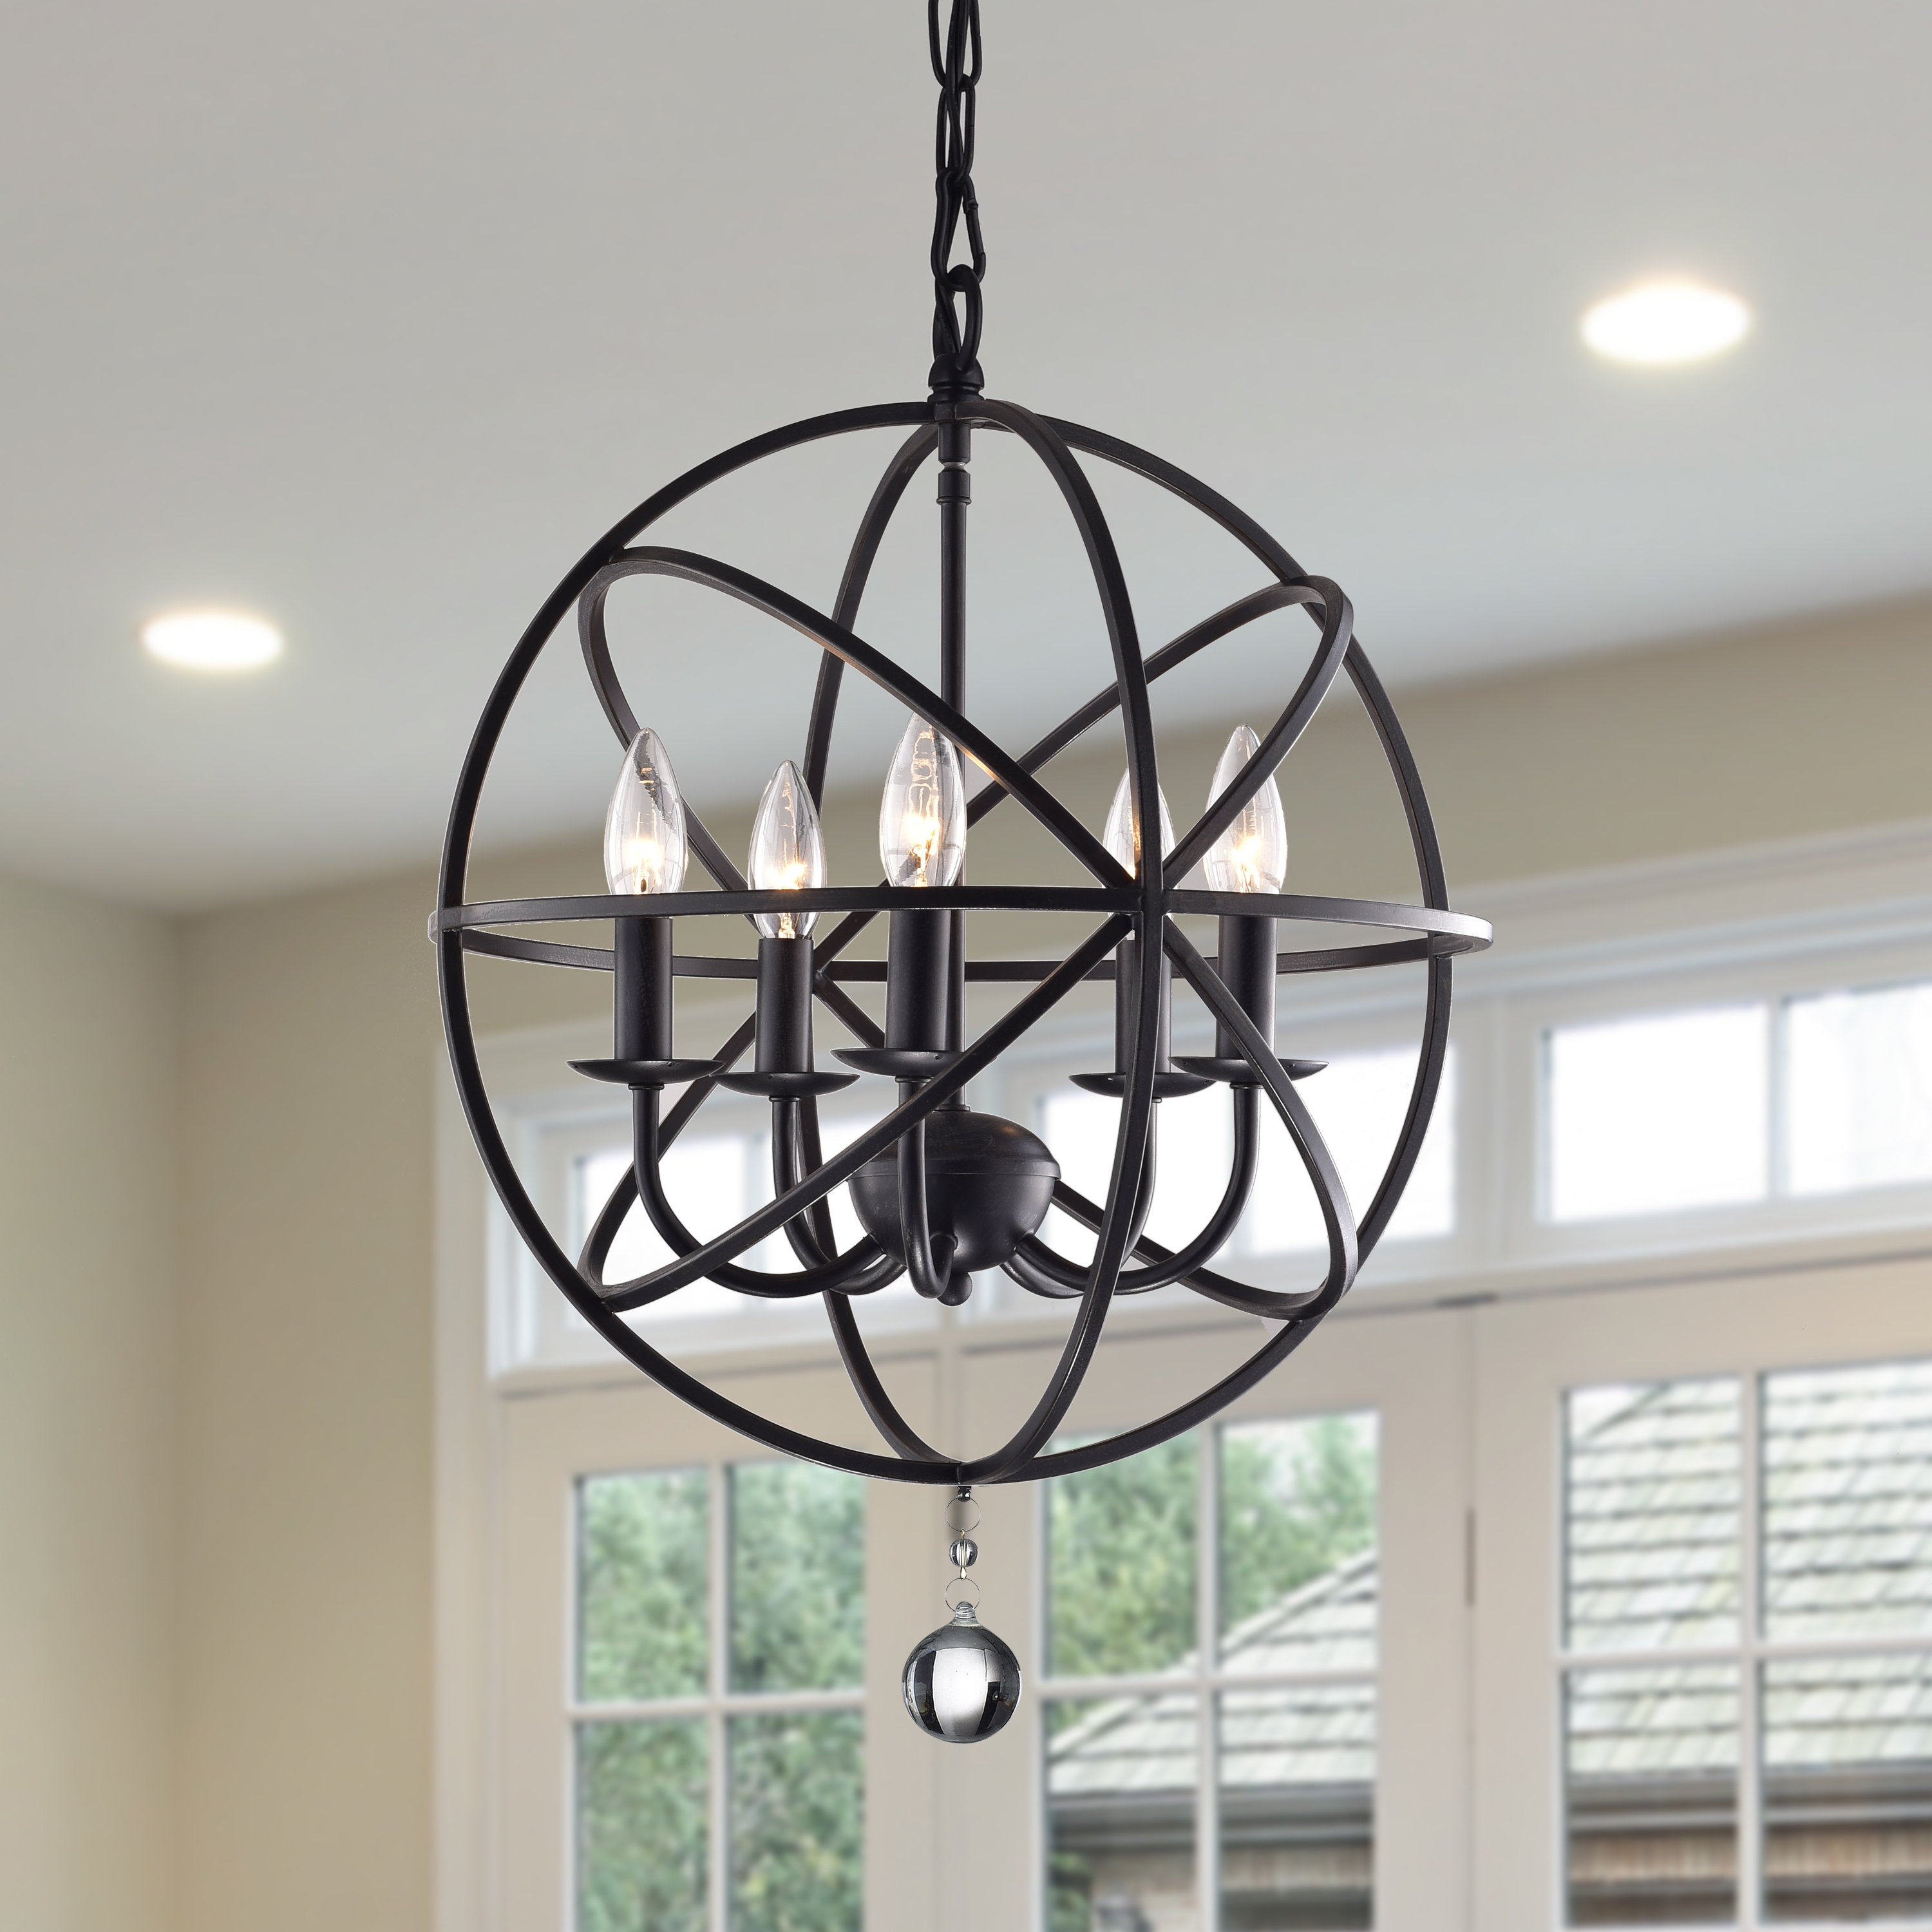 Verlene Foyer 5 Light Globe Chandelier Pertaining To Eastbourne 6 Light Unique / Statement Chandeliers (View 8 of 30)